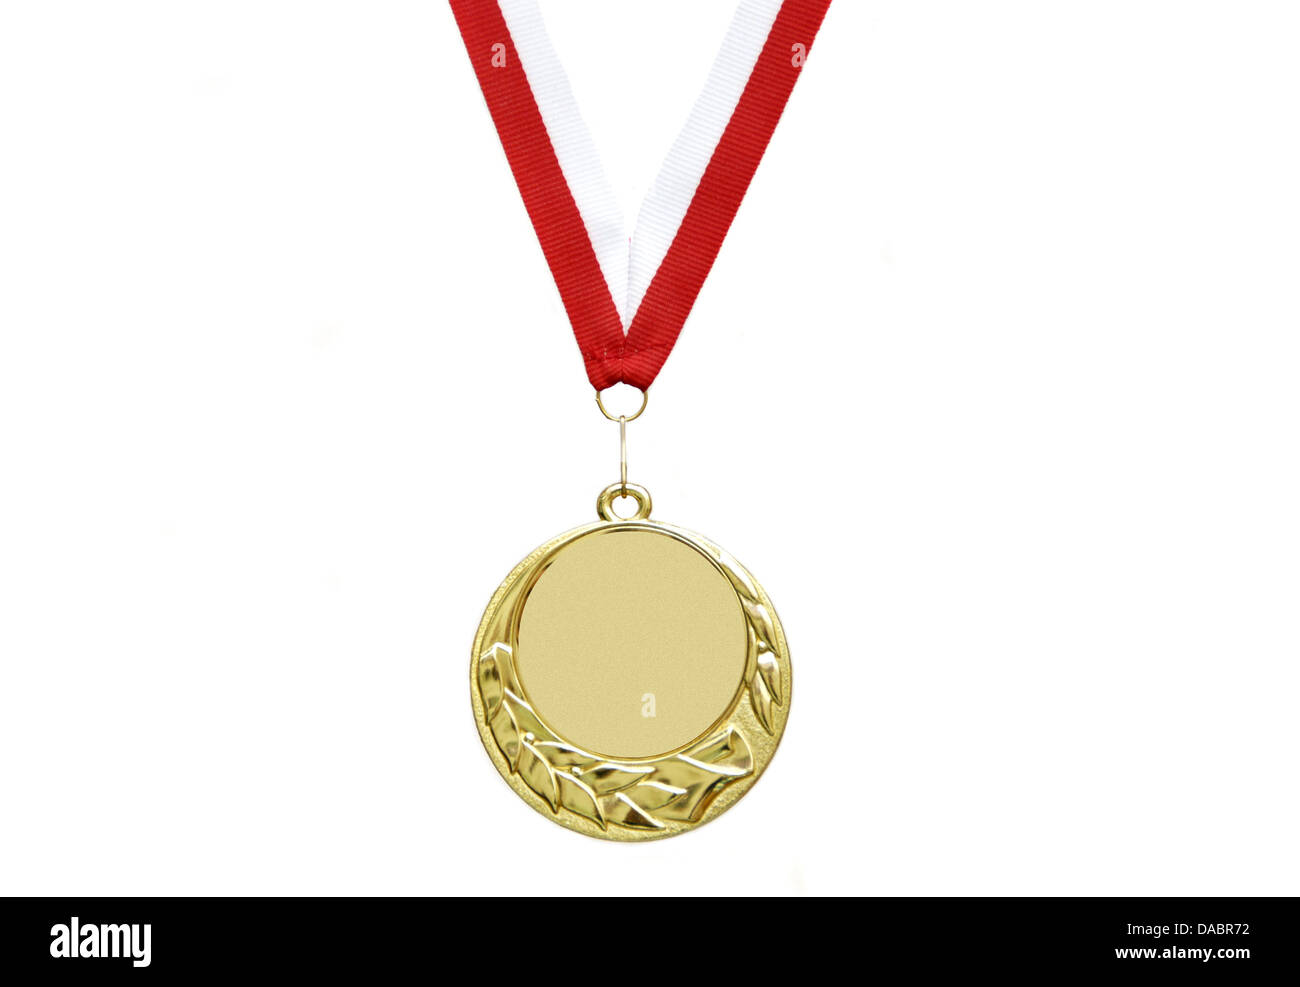 gold medal with ribbon - Stock Image